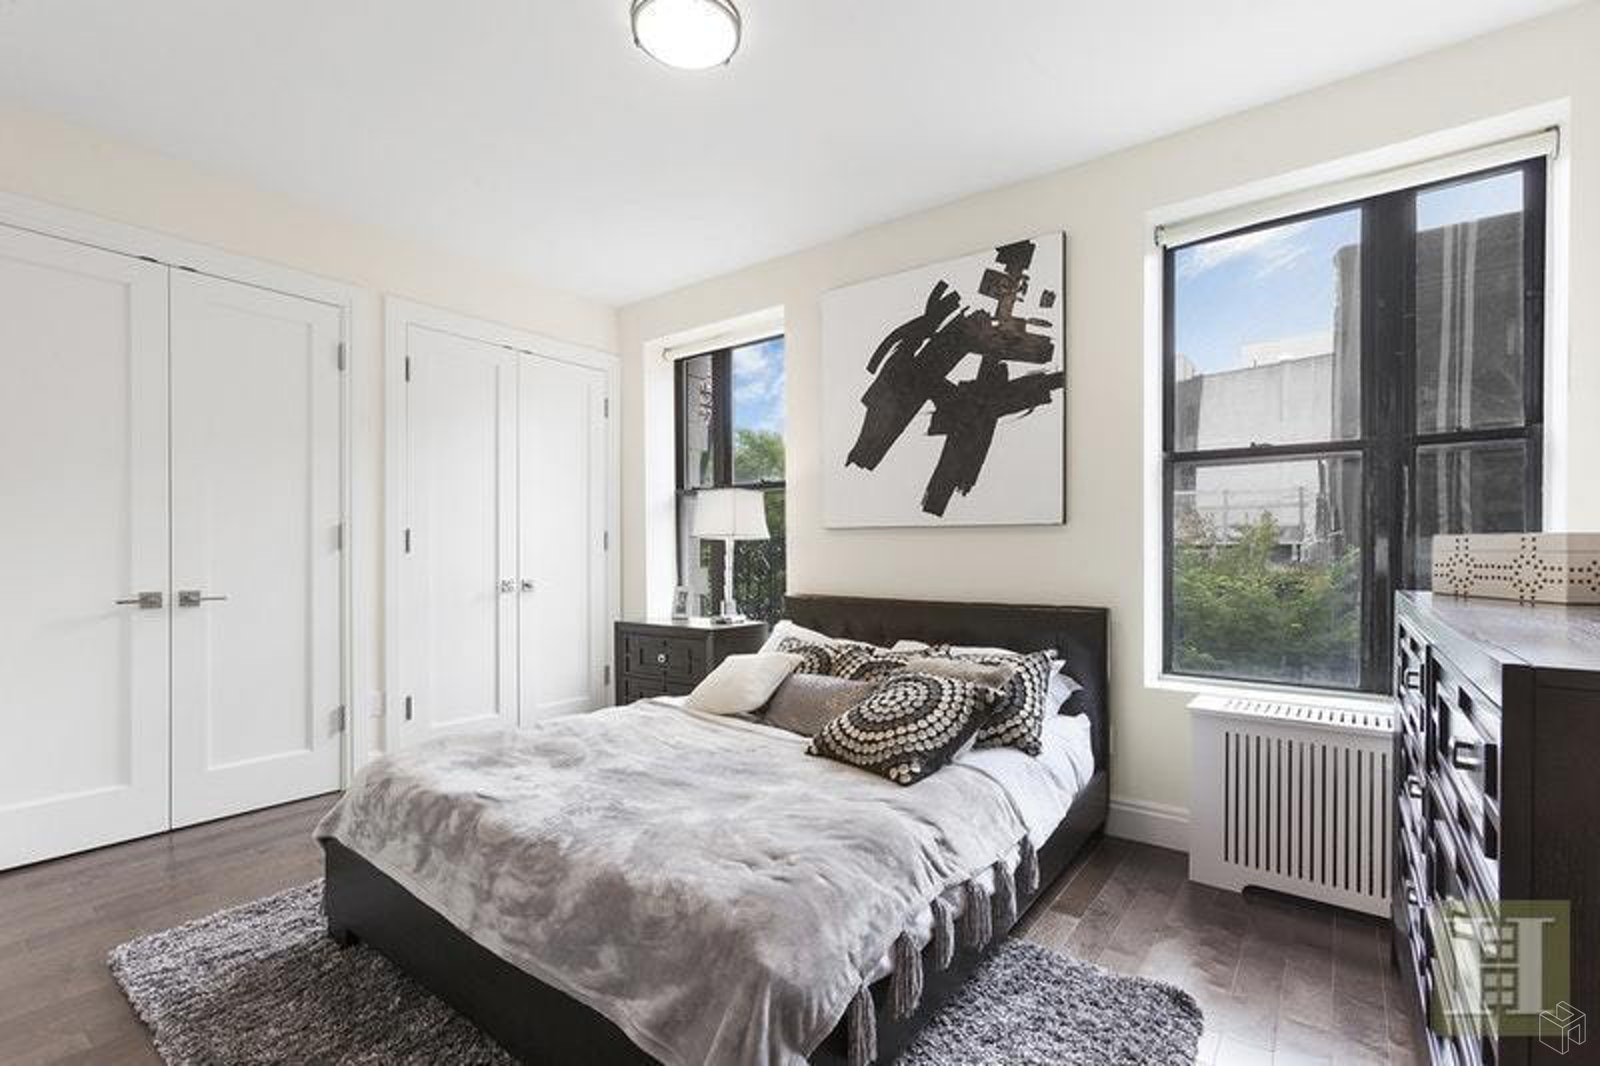 98 Morningside Avenue 26, Upper Manhattan, NYC, 10027, Price Not Disclosed, Rented Property, Halstead Real Estate, Photo 4